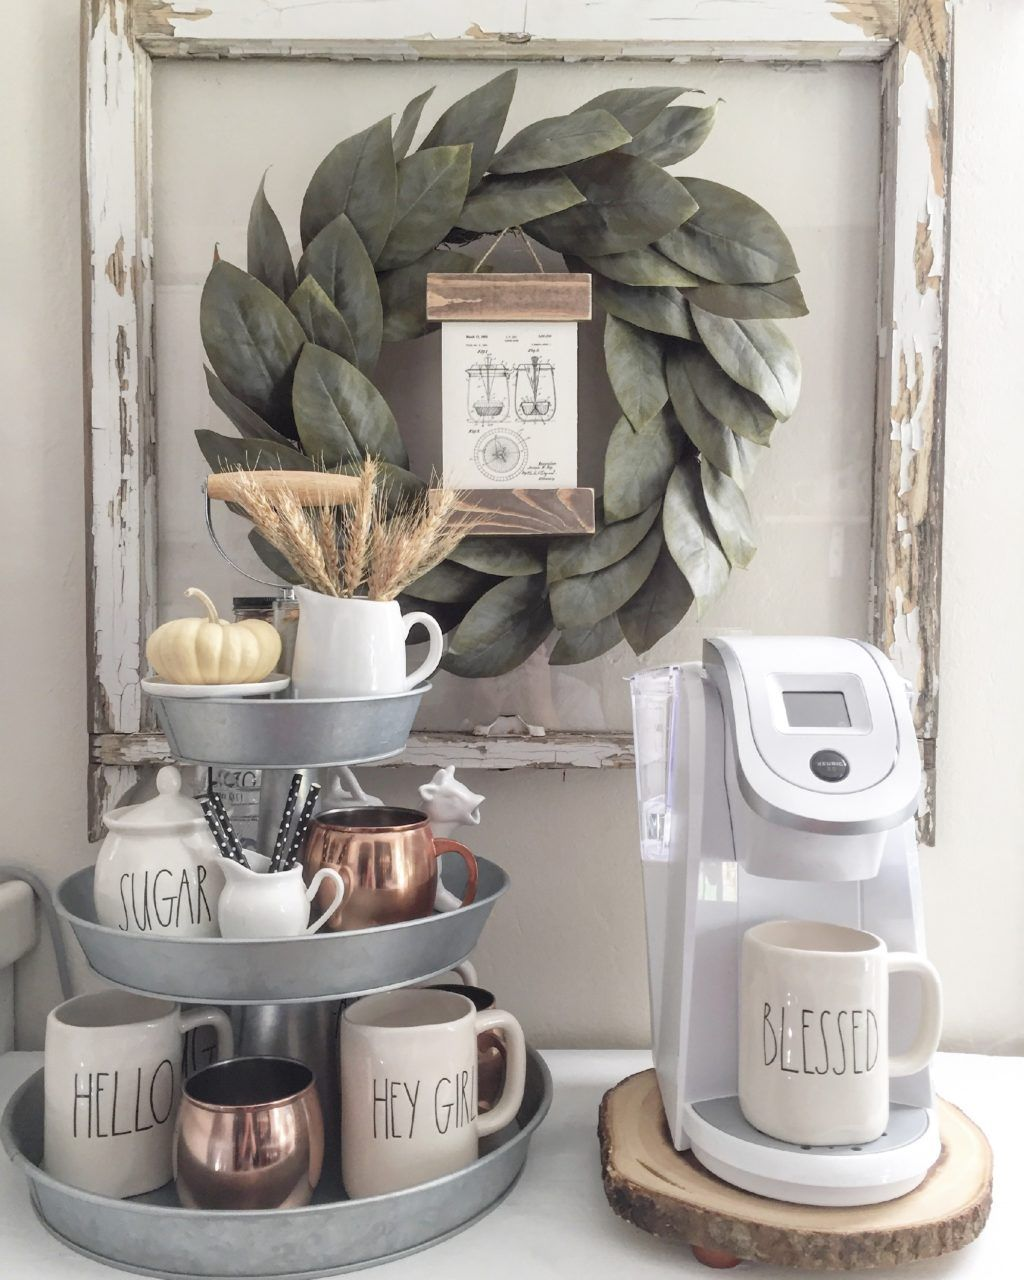 Amazing DIY Rae Dunn Display Ideas And Pictures 21